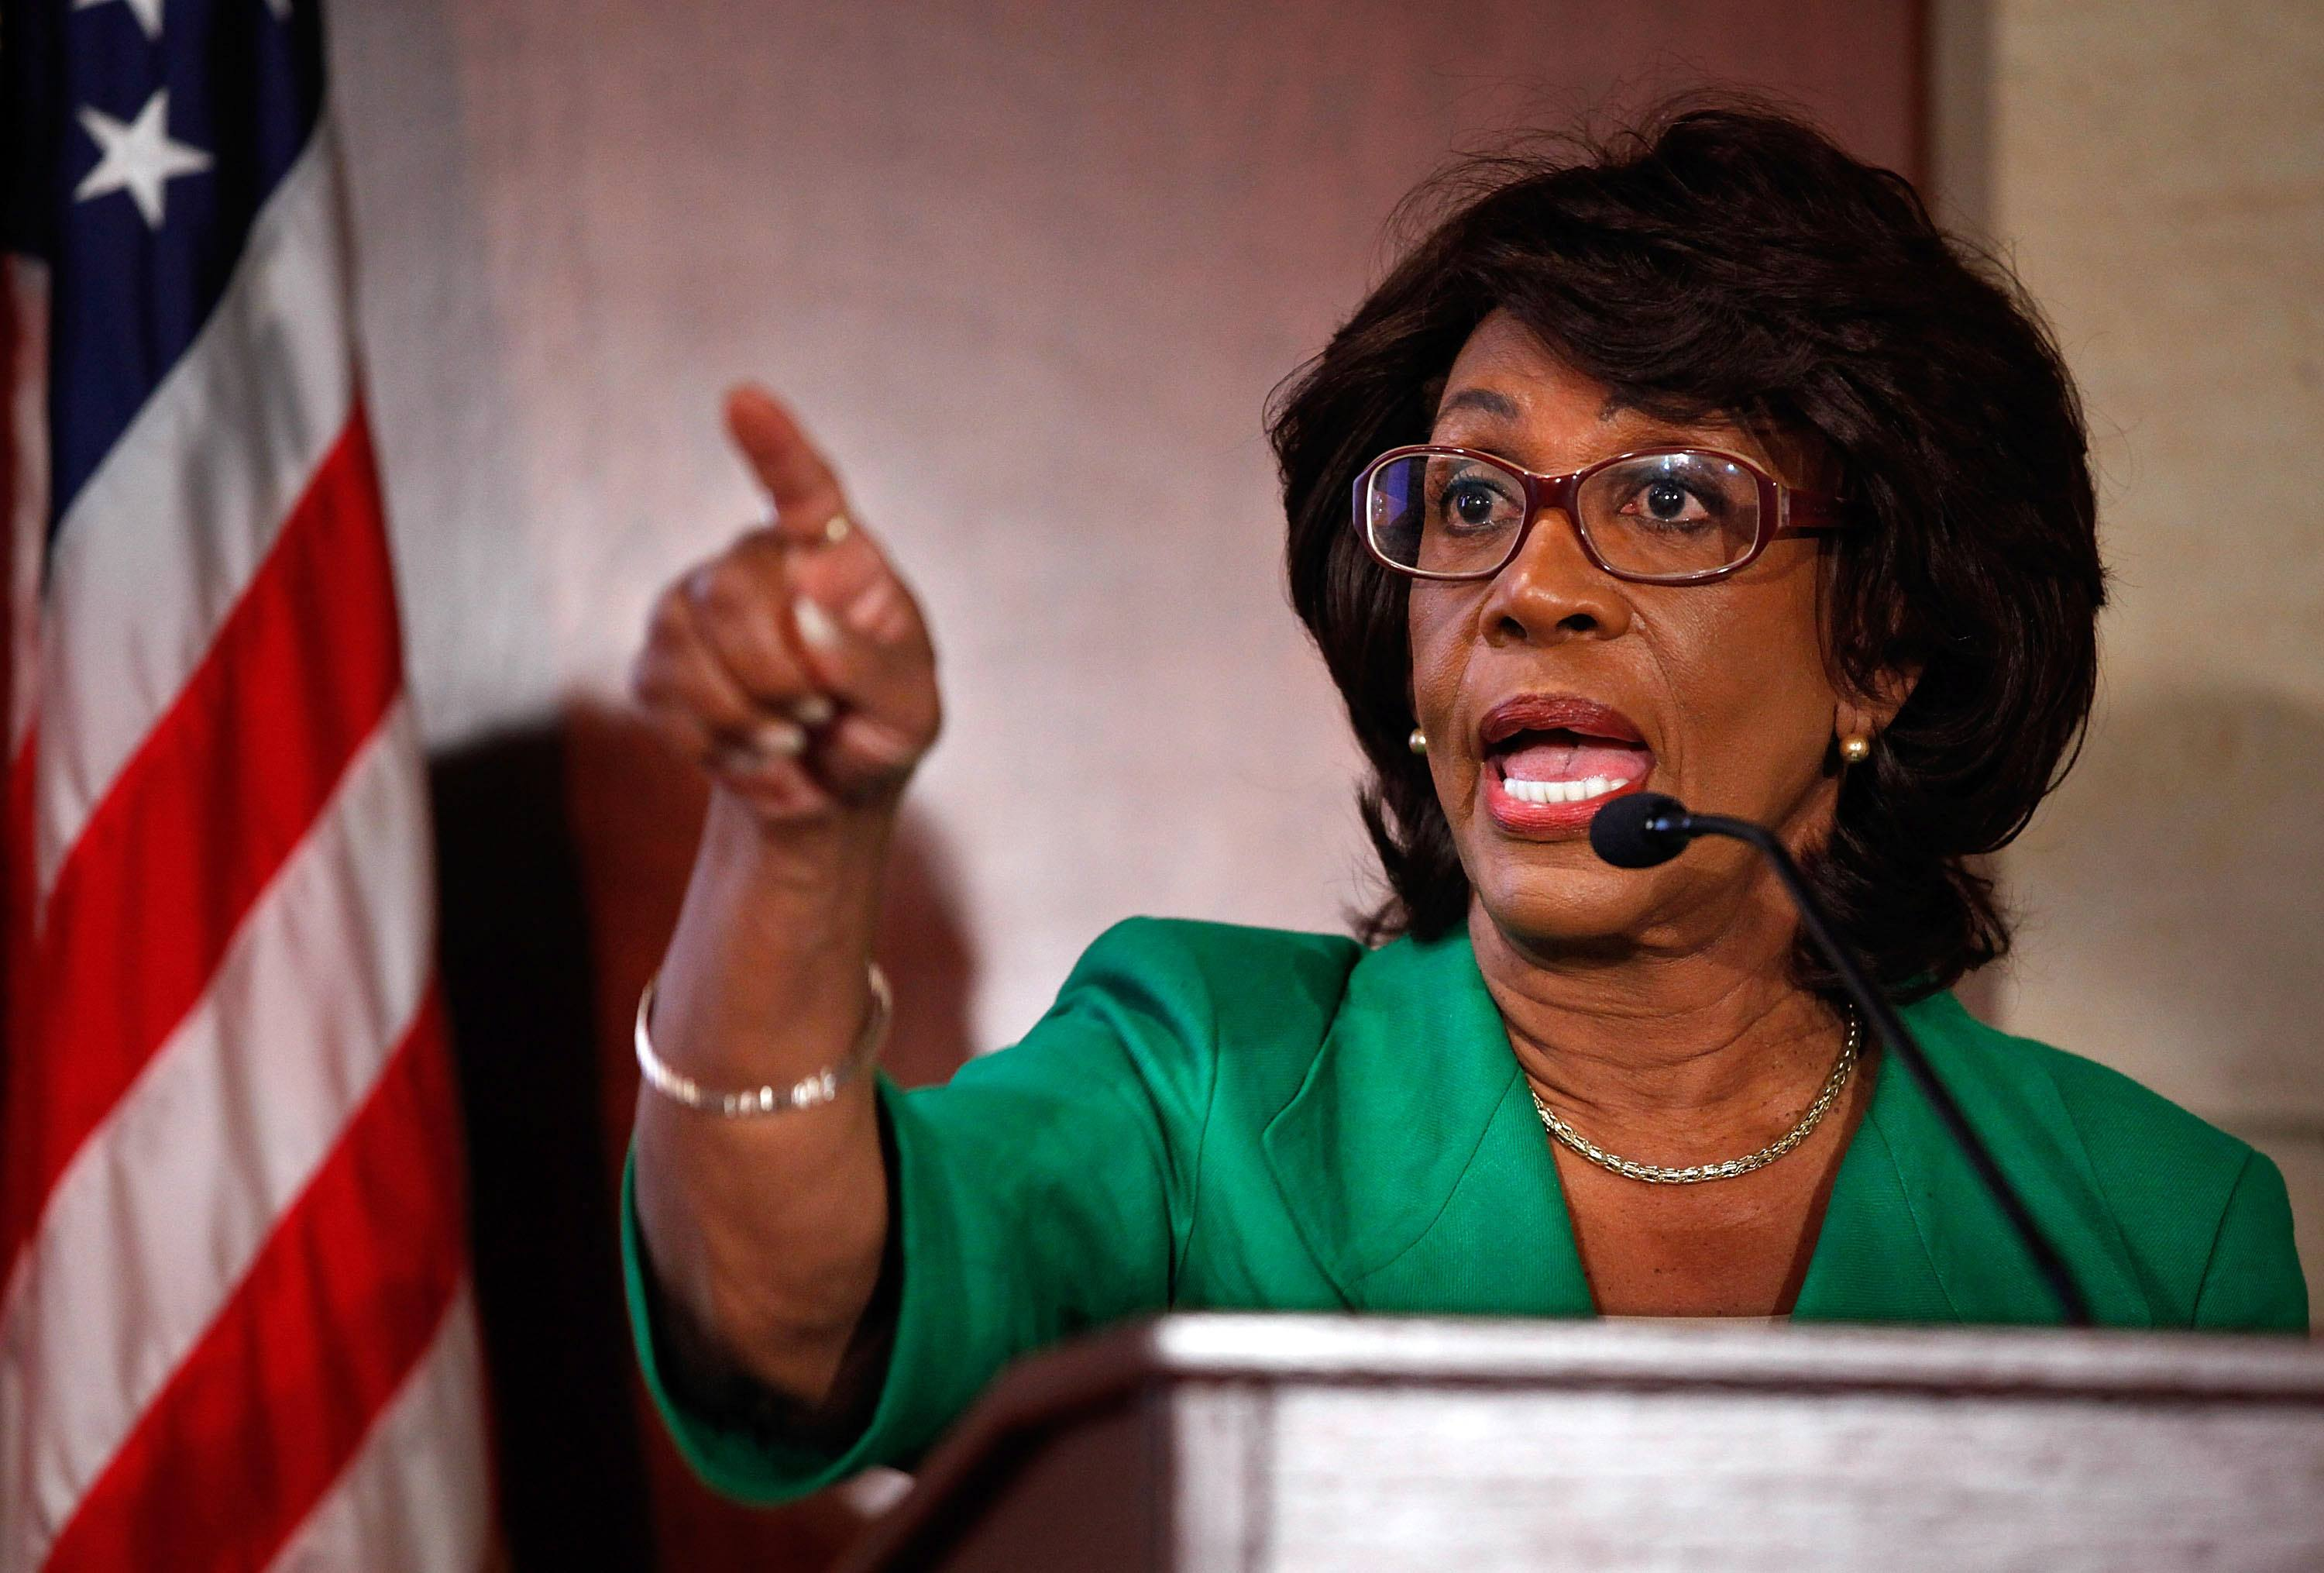 Maxine Waters speaking at a press conference